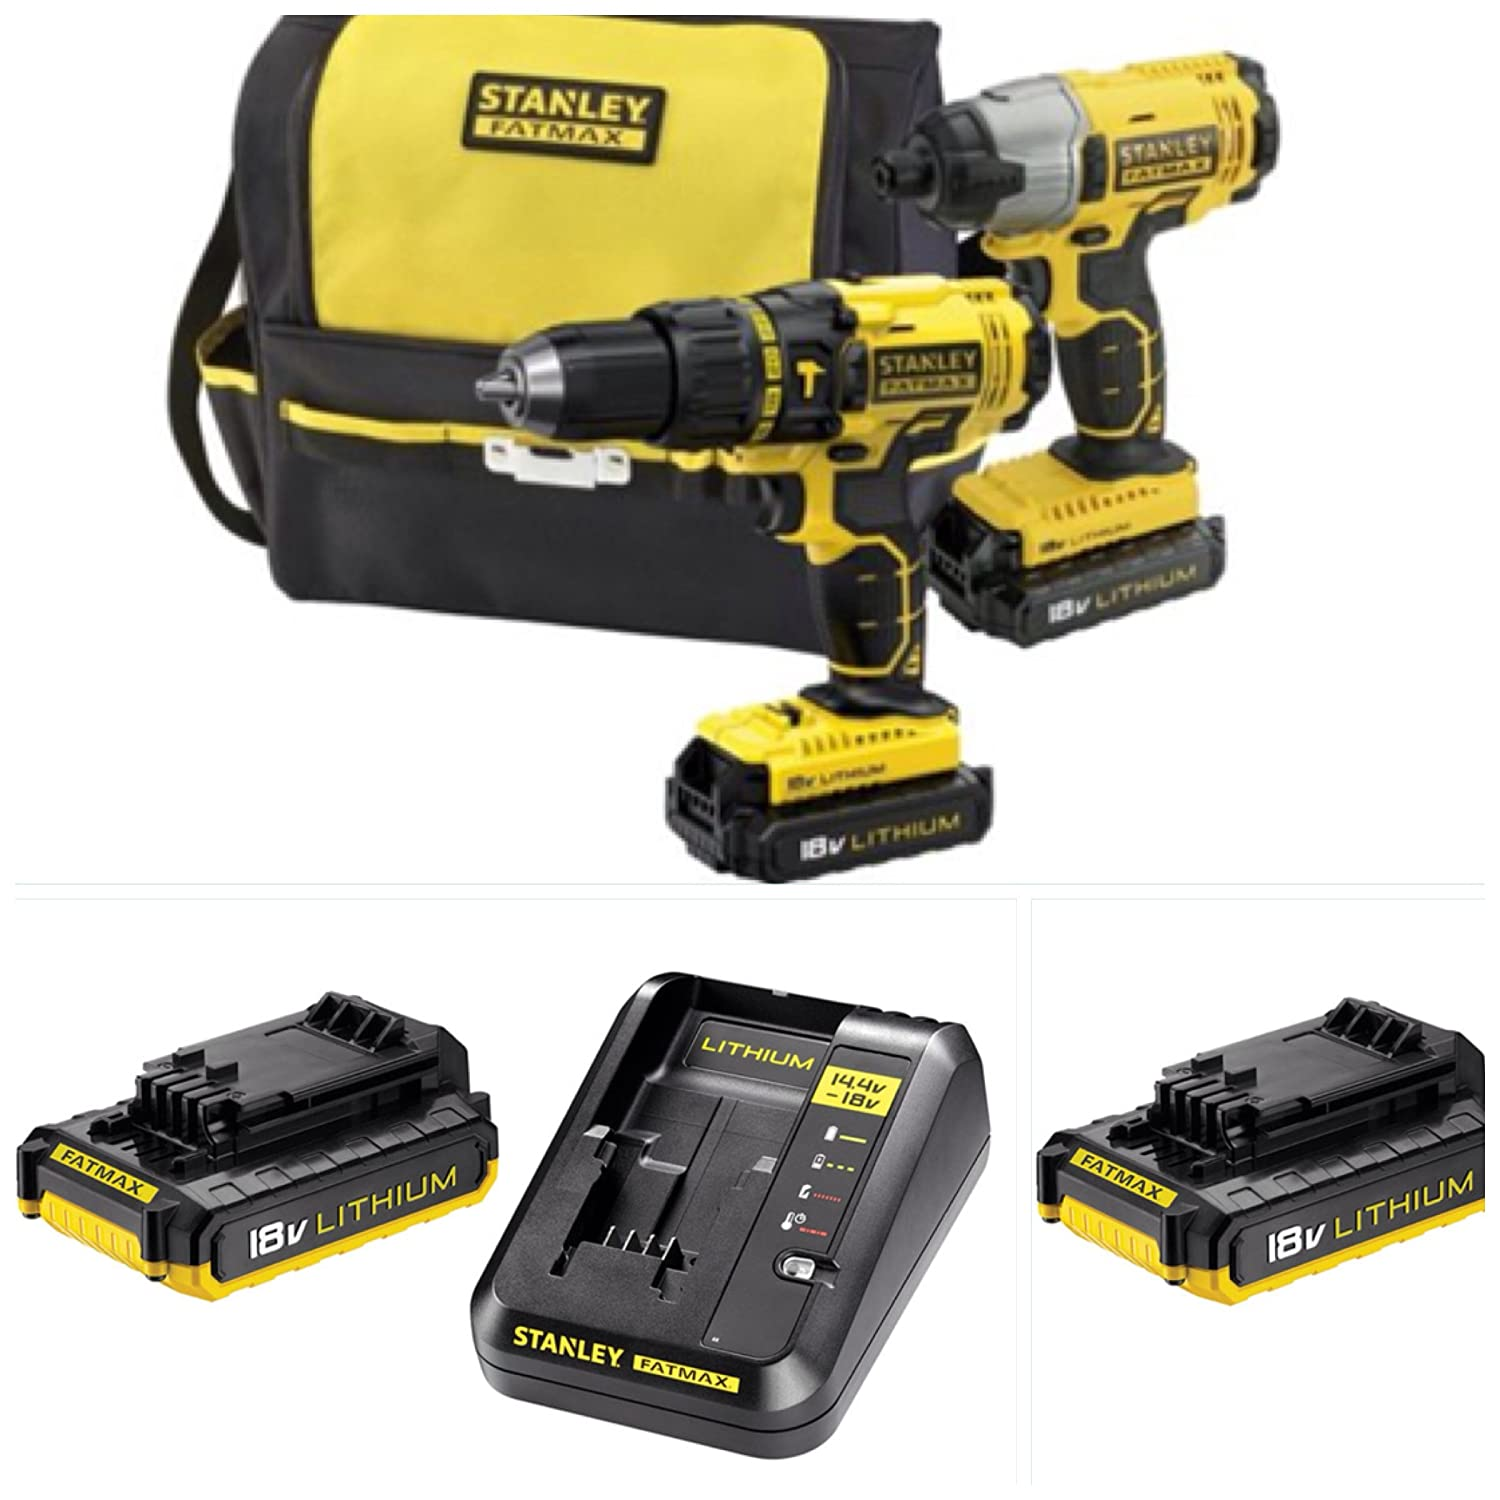 Stanley Fatmax 18v Cordless Twinpack Complete Kit X1 Impact Driver Brushless X1combi Hammer Drill X2 Lithium Batterysfast Charger Tool Bag Diy